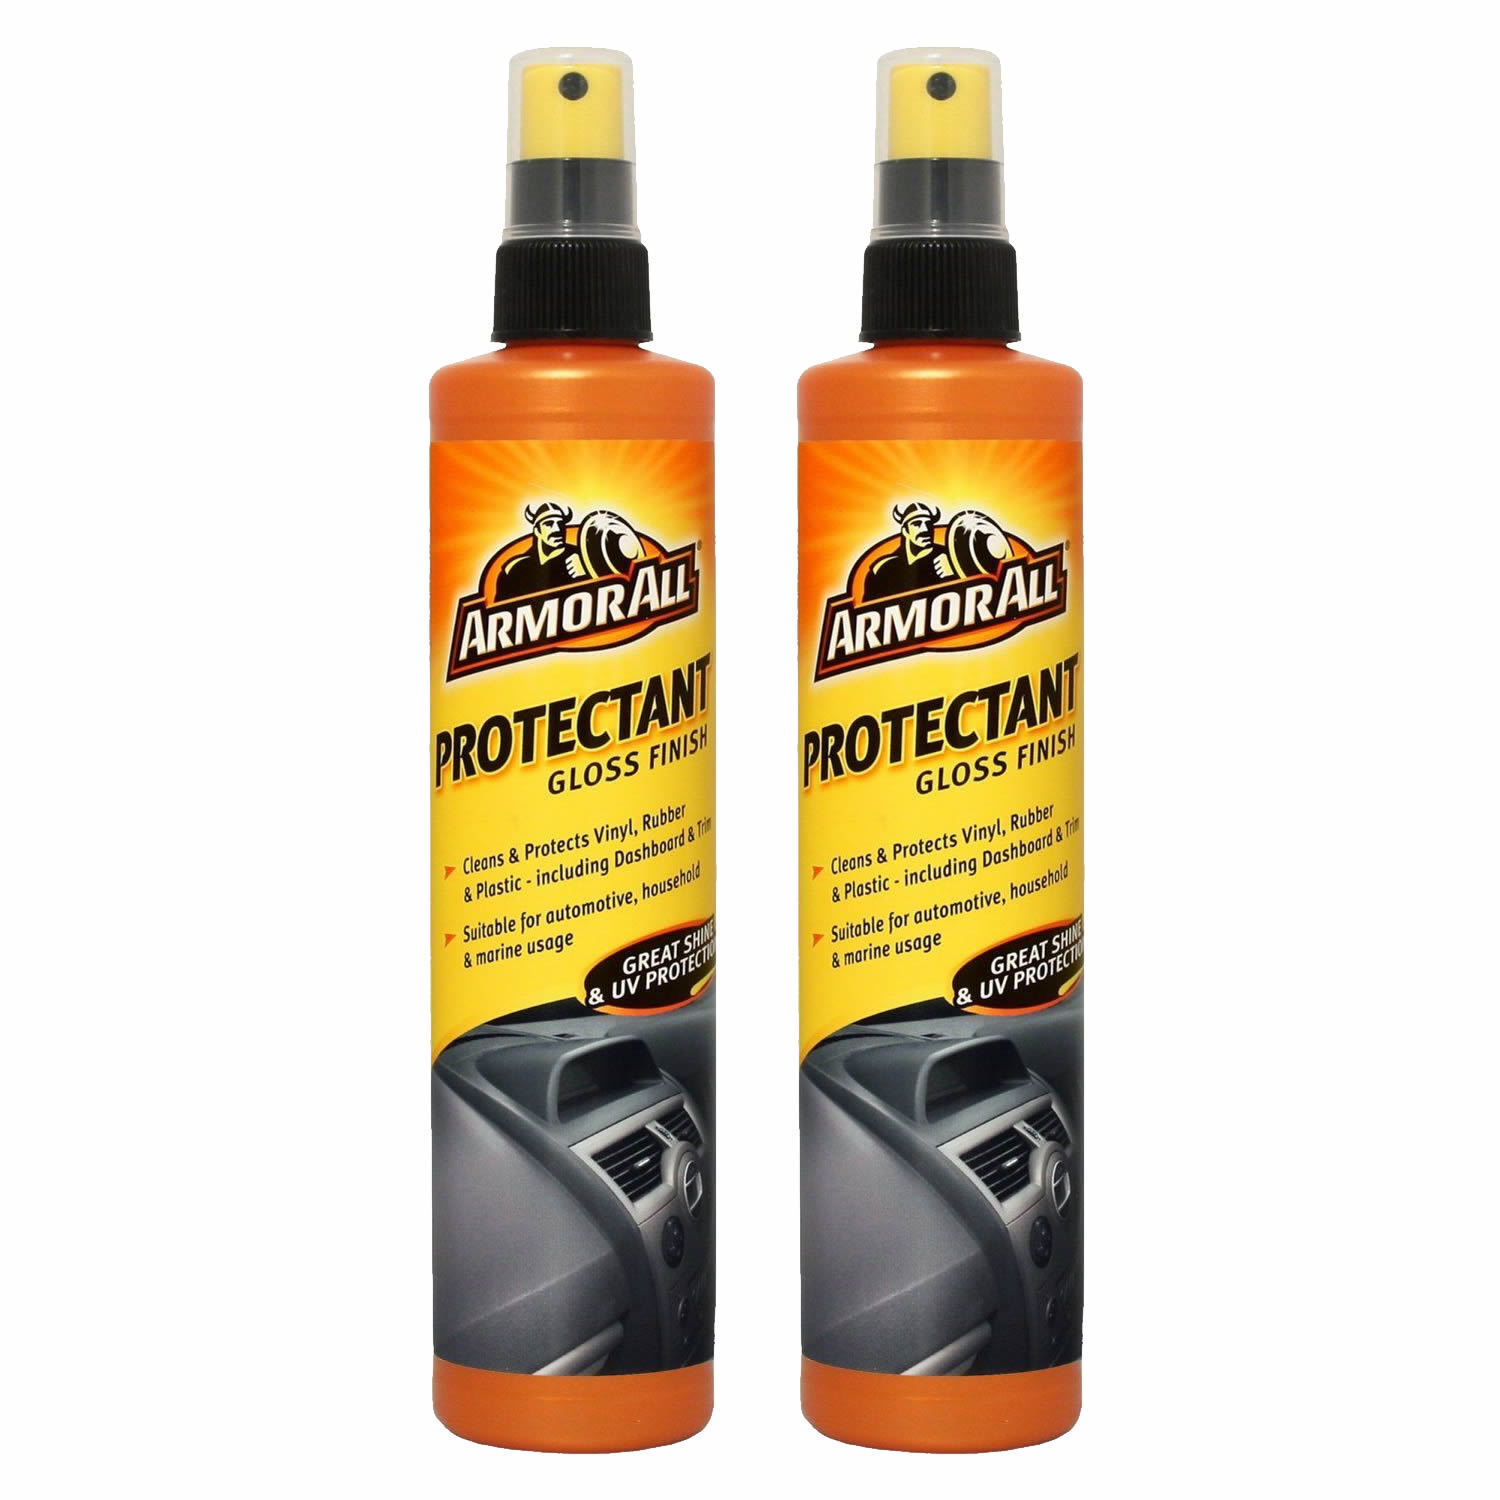 2 x ARMORALL PROTECTANT GLOSS FINISH INTERIOR CLEANER CAR VAN TRIM DASH 300ml